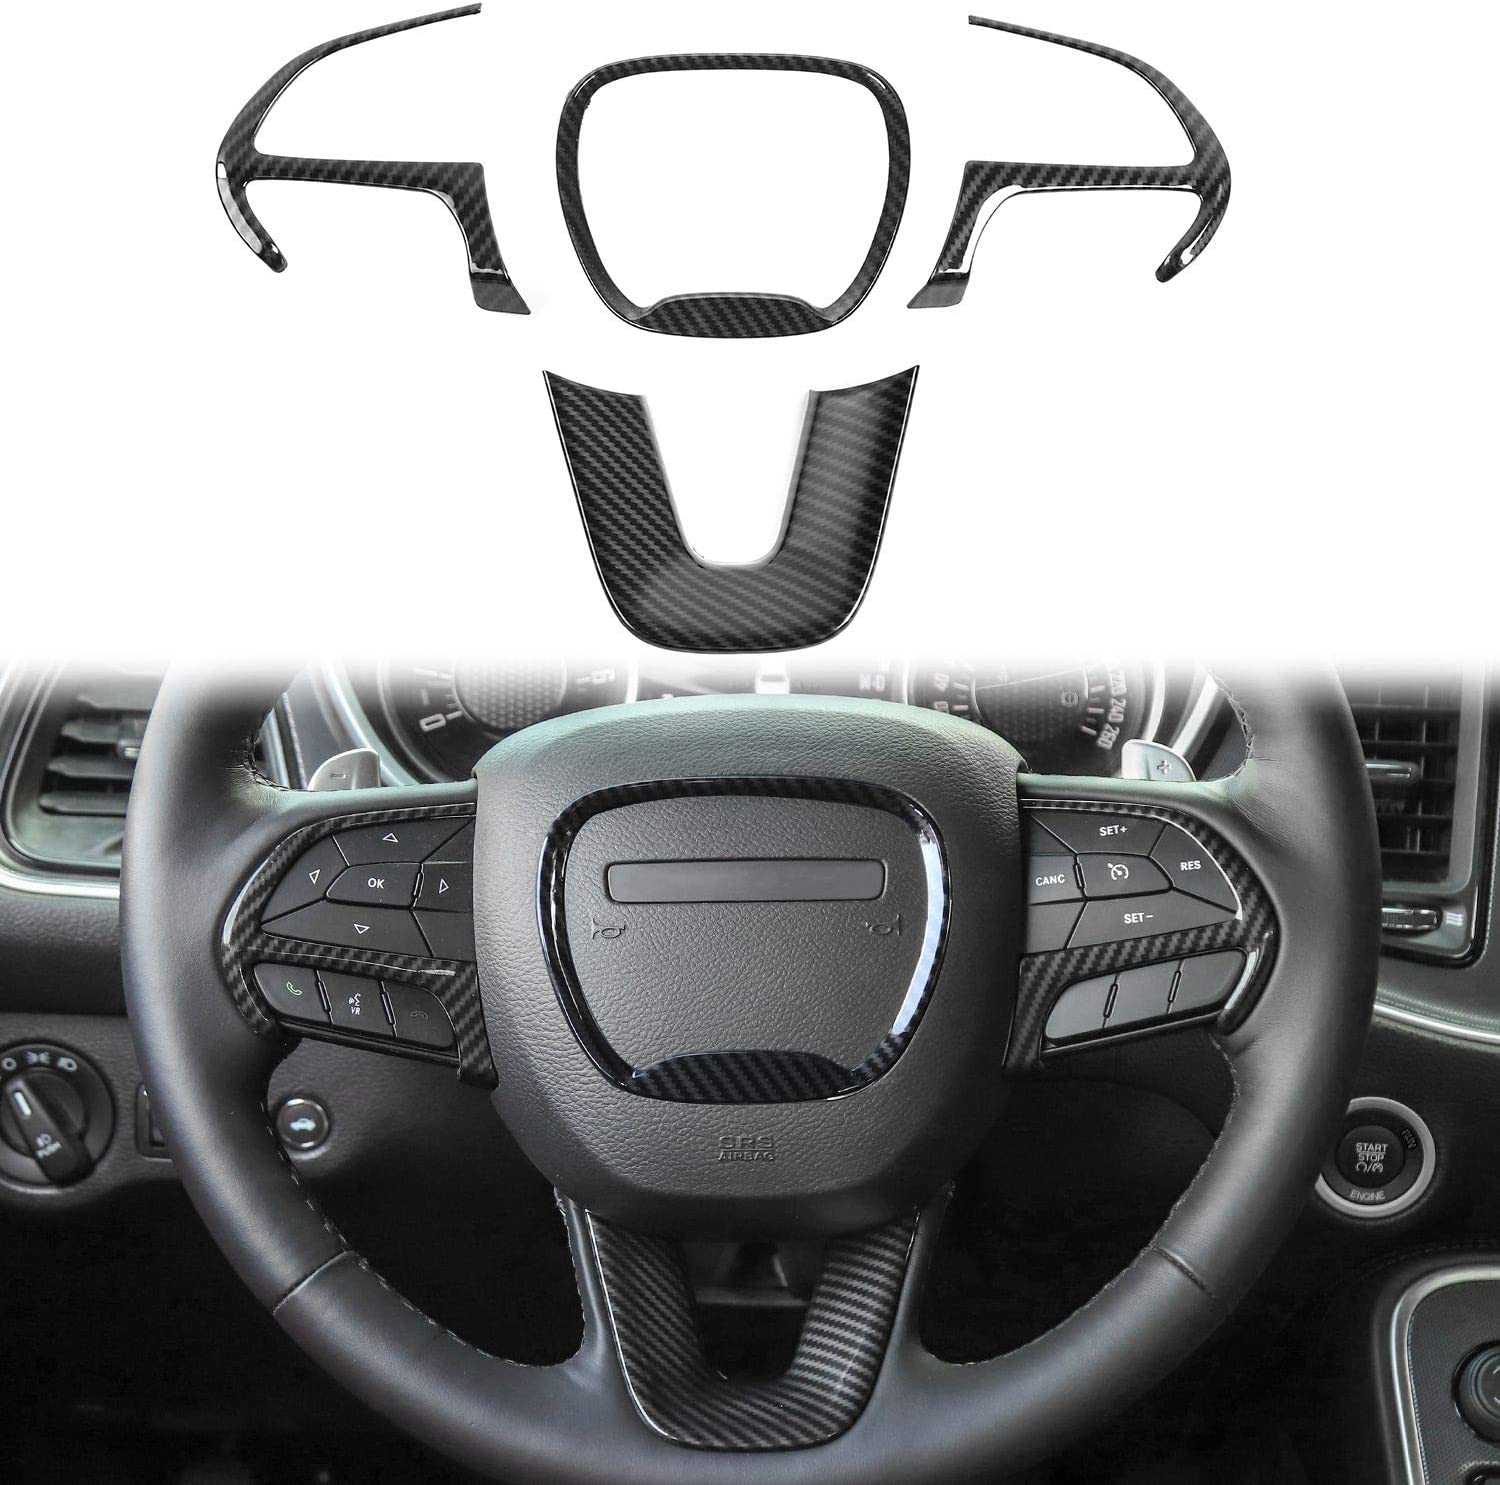 Bonbo for Challenger Steering Wheel Decoration Cover Trim Interior Accessories for 2014 up Durango 2014 up Jeep Grand Cherokee SRT8,2015-2020 Dodge Challenger/&Charger Purple